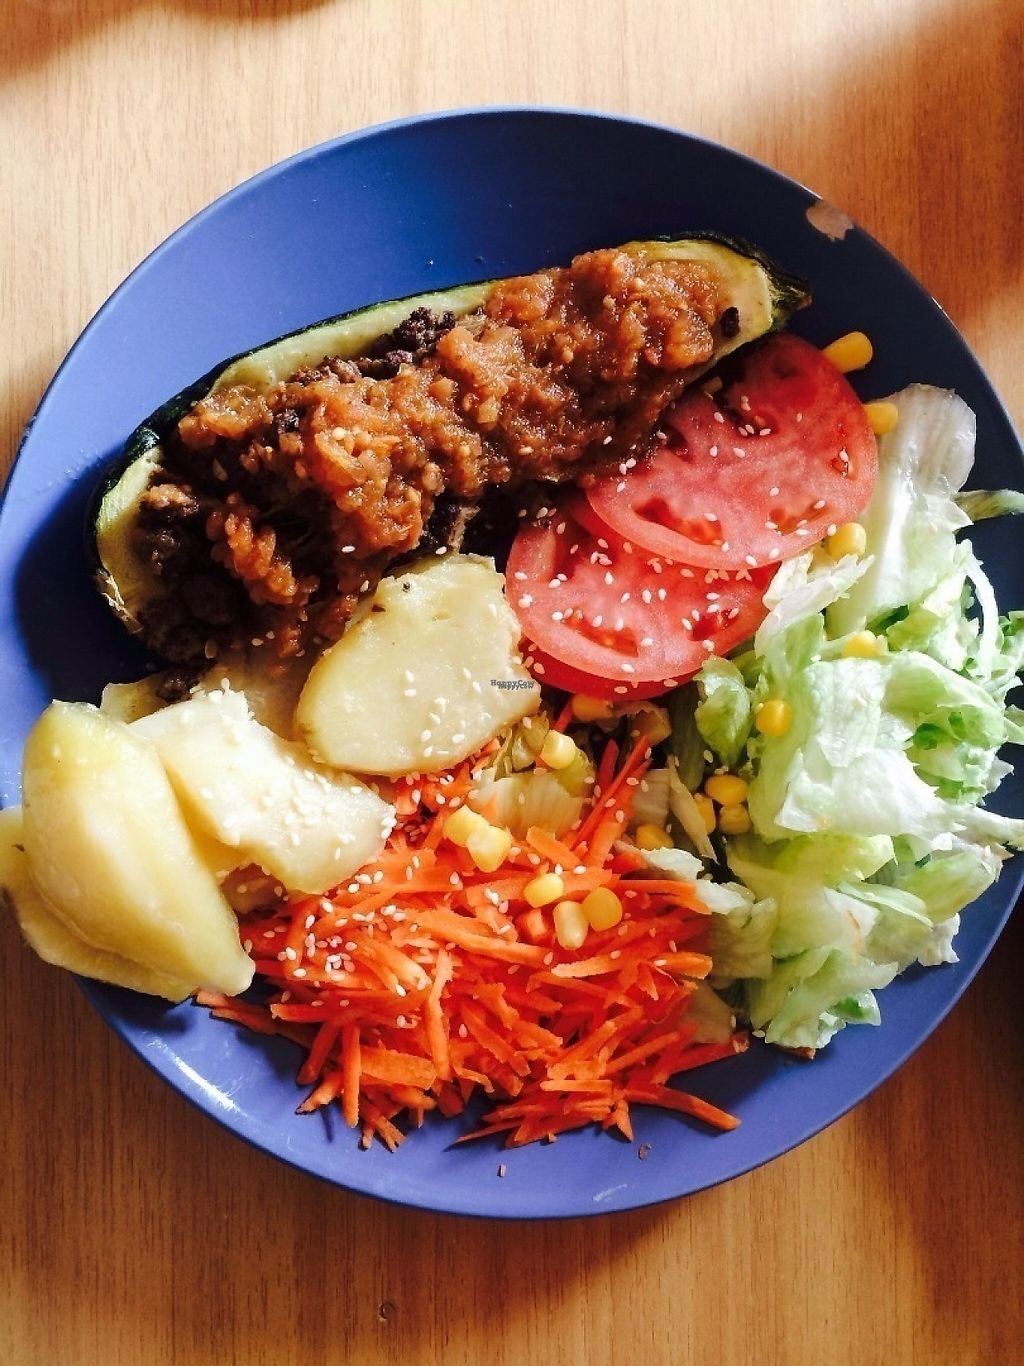 "Photo of Polen  by <a href=""/members/profile/SofiaC"">SofiaC</a> <br/>Zapallo Italiano relleno con carne vegetal , papas y ensalada de lechuga con zanahoria y tomate.